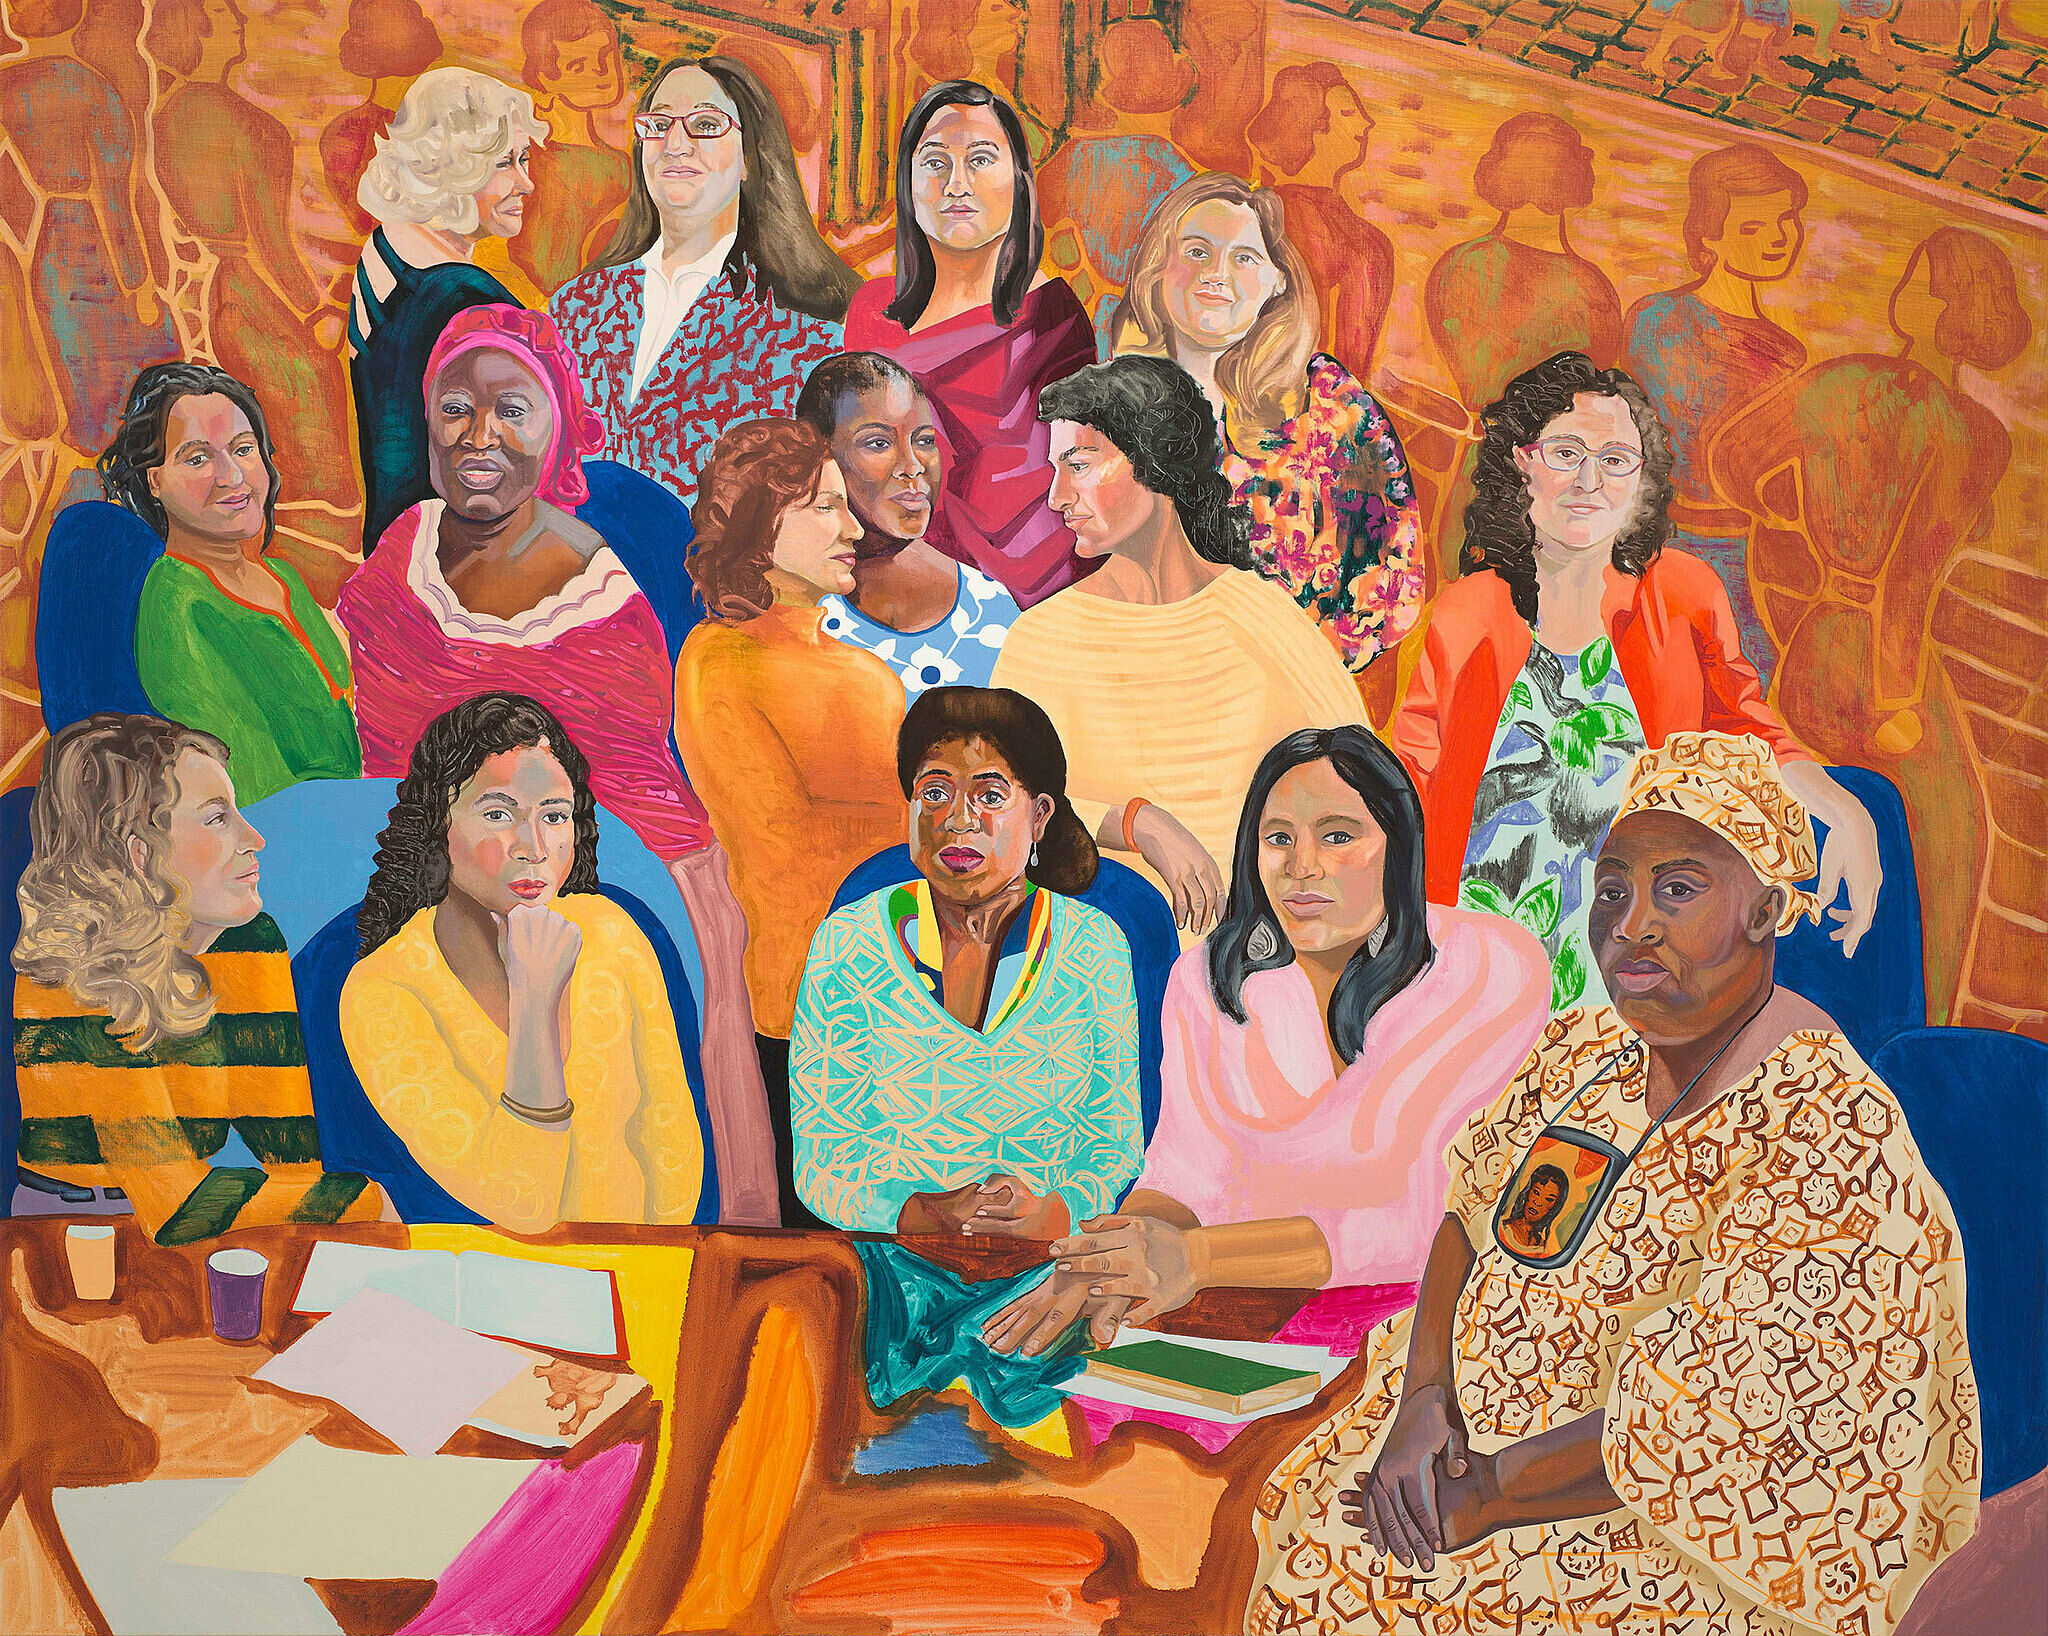 A painting of a group of women.